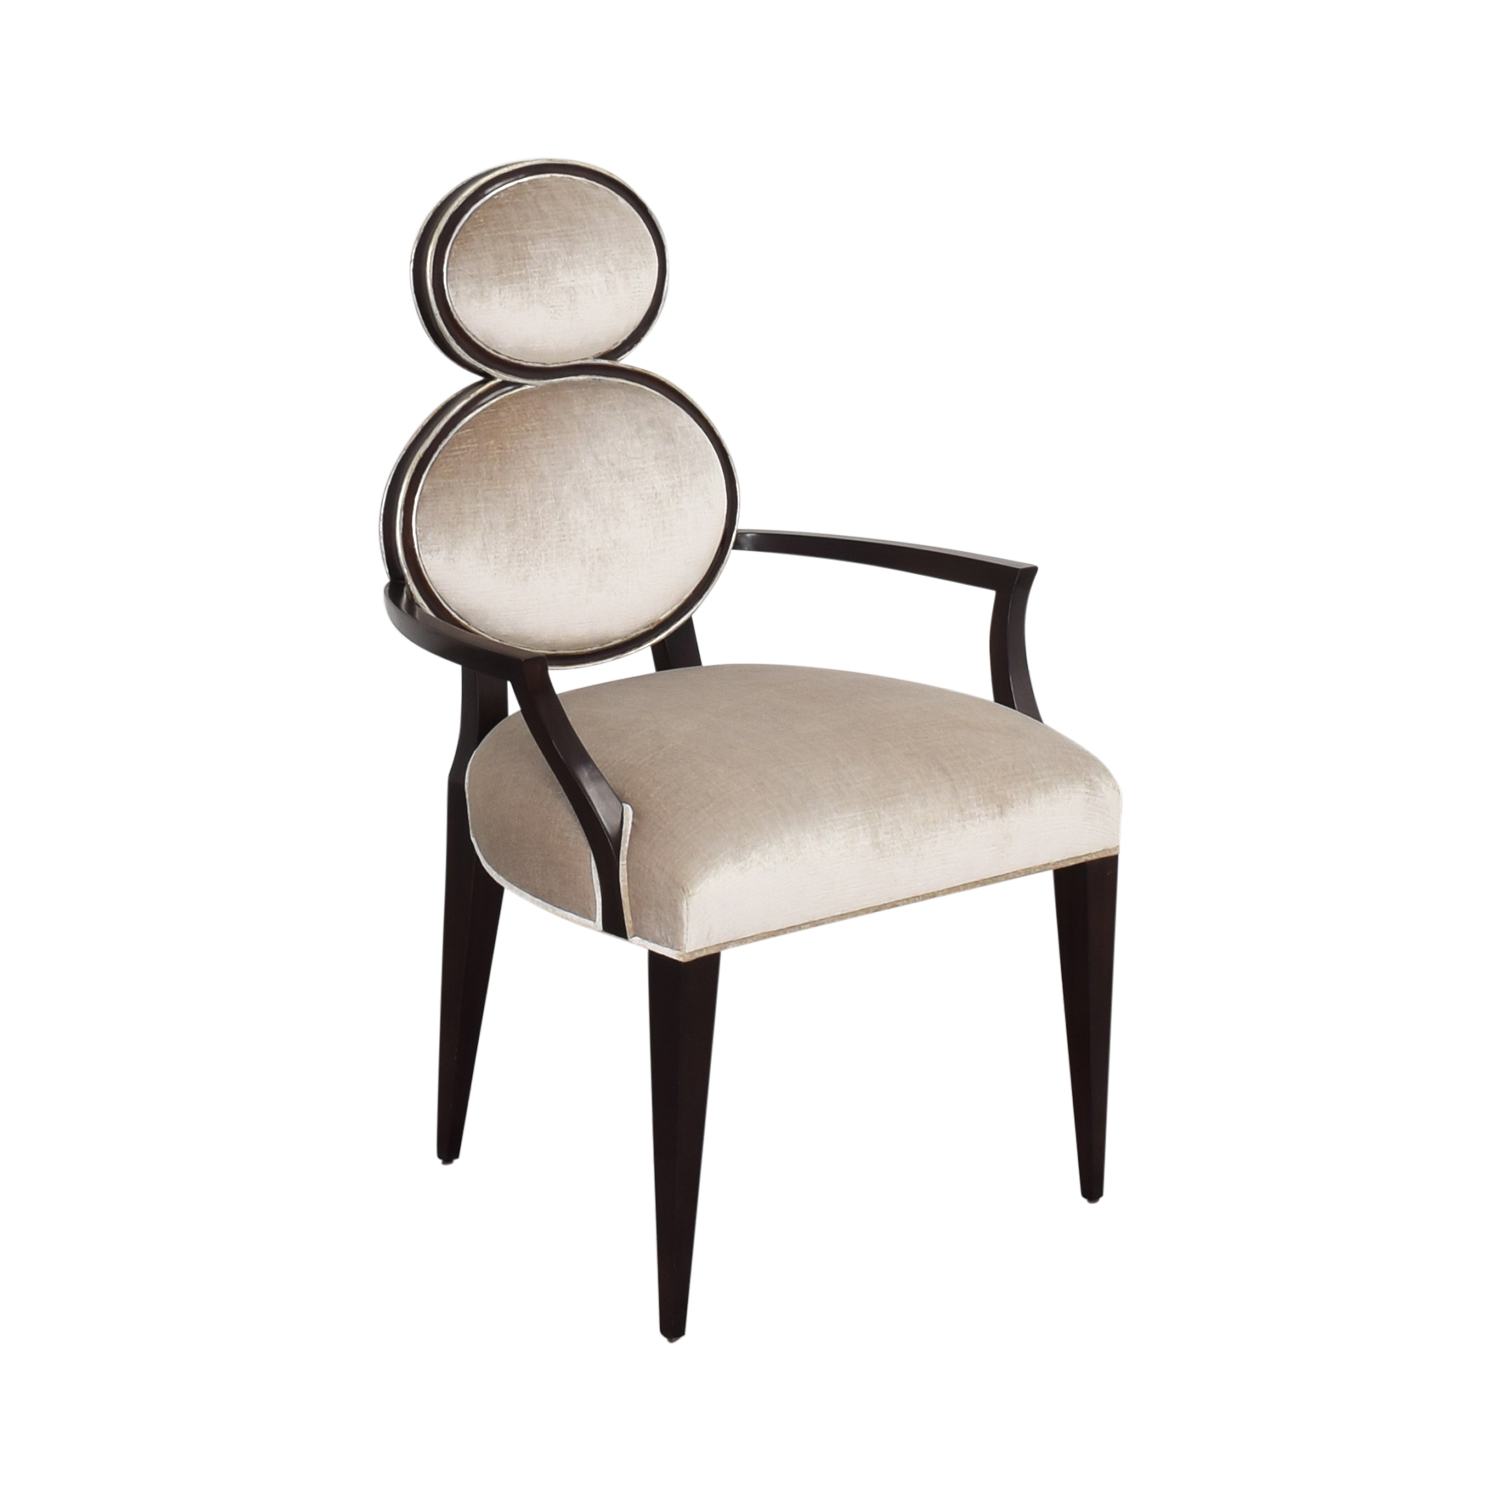 Christopher Guy Christopher Guy Eight Chair